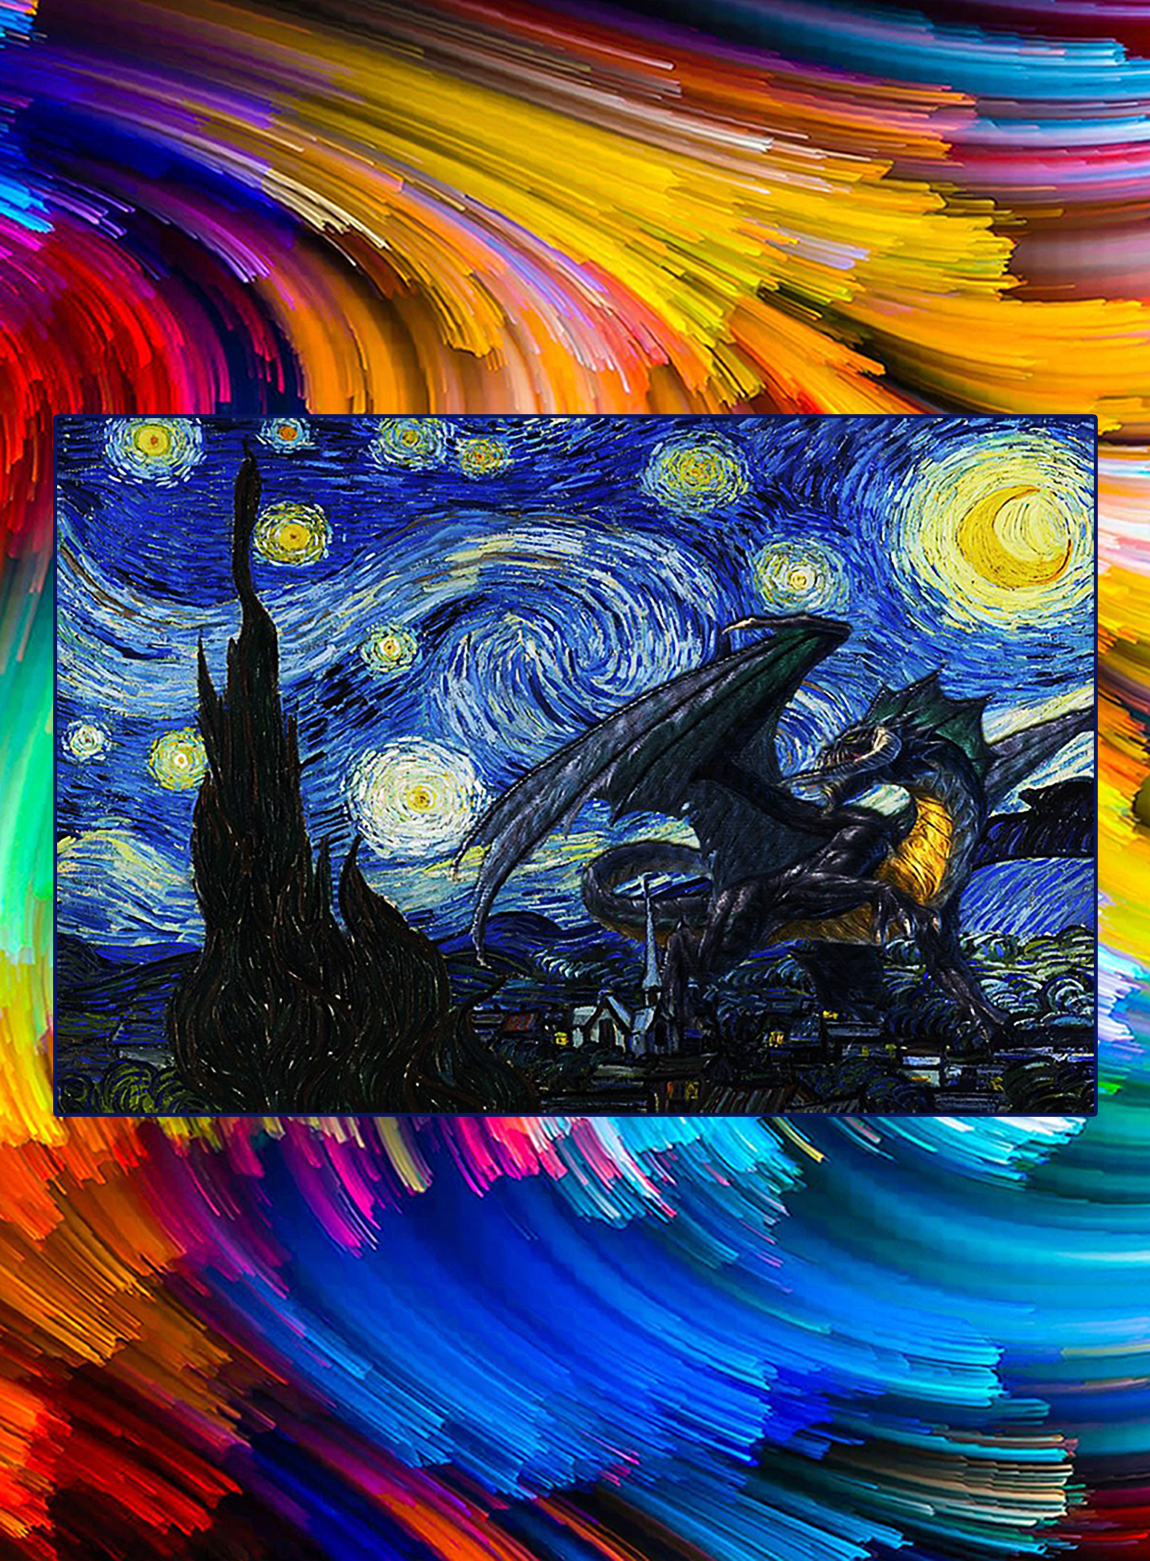 Dragon love starry night poster - A2